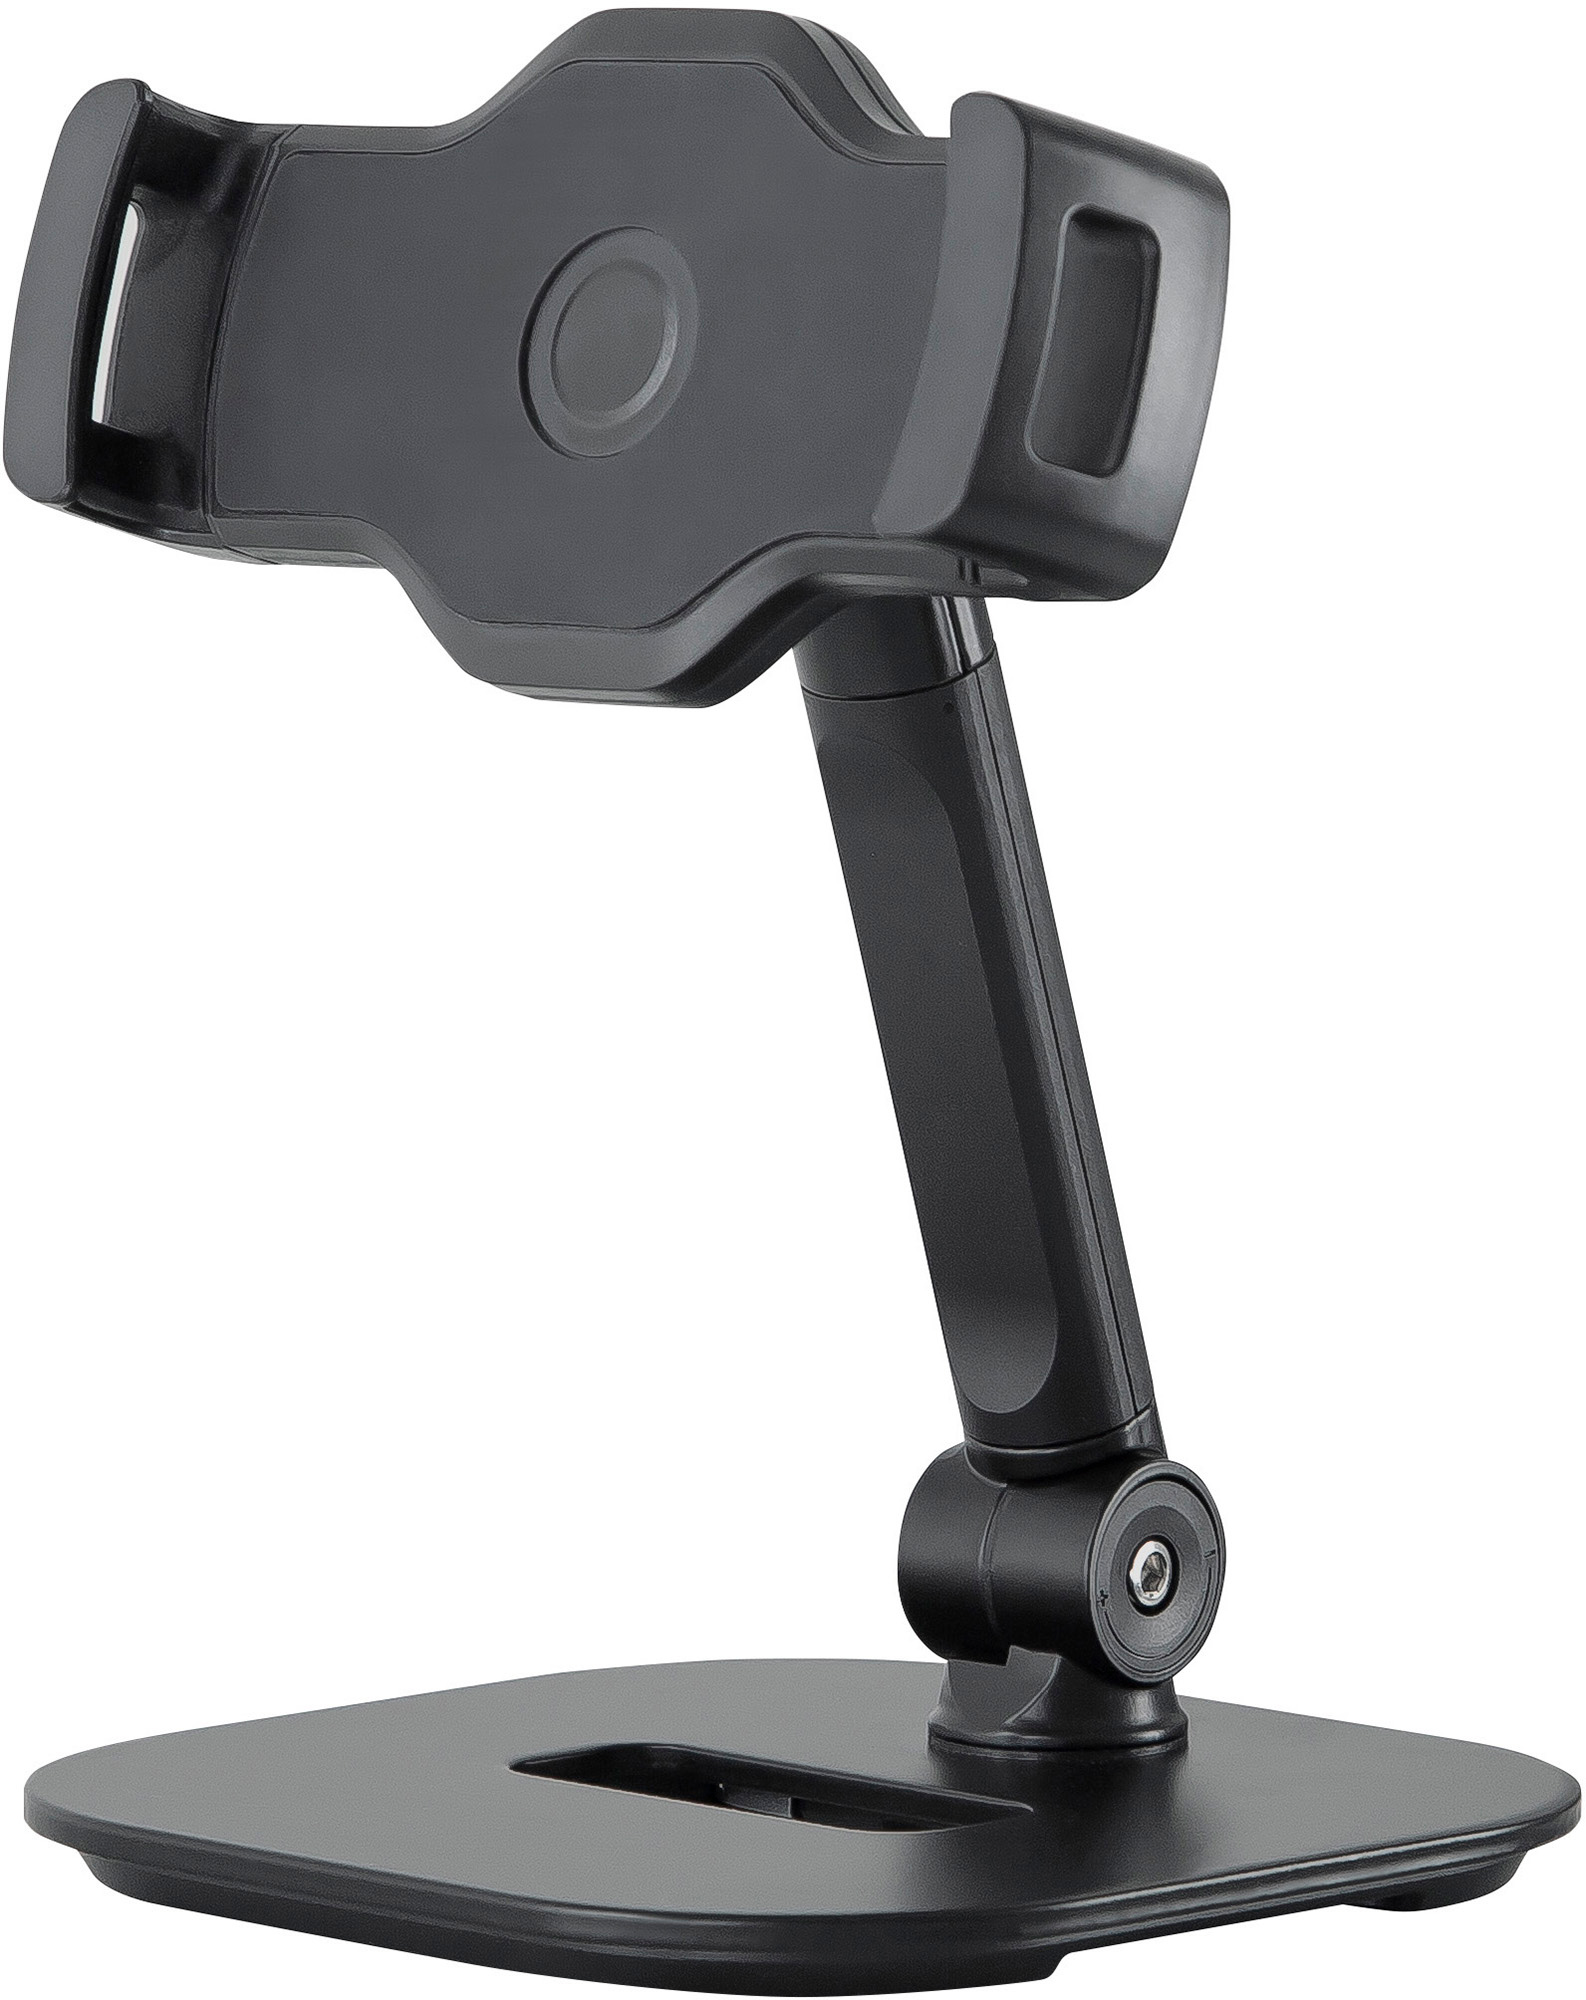 K&M 19800 Smartphone/Tablet Desk Stand for devices from 10.2 to 13 Inches - Black KM-19800